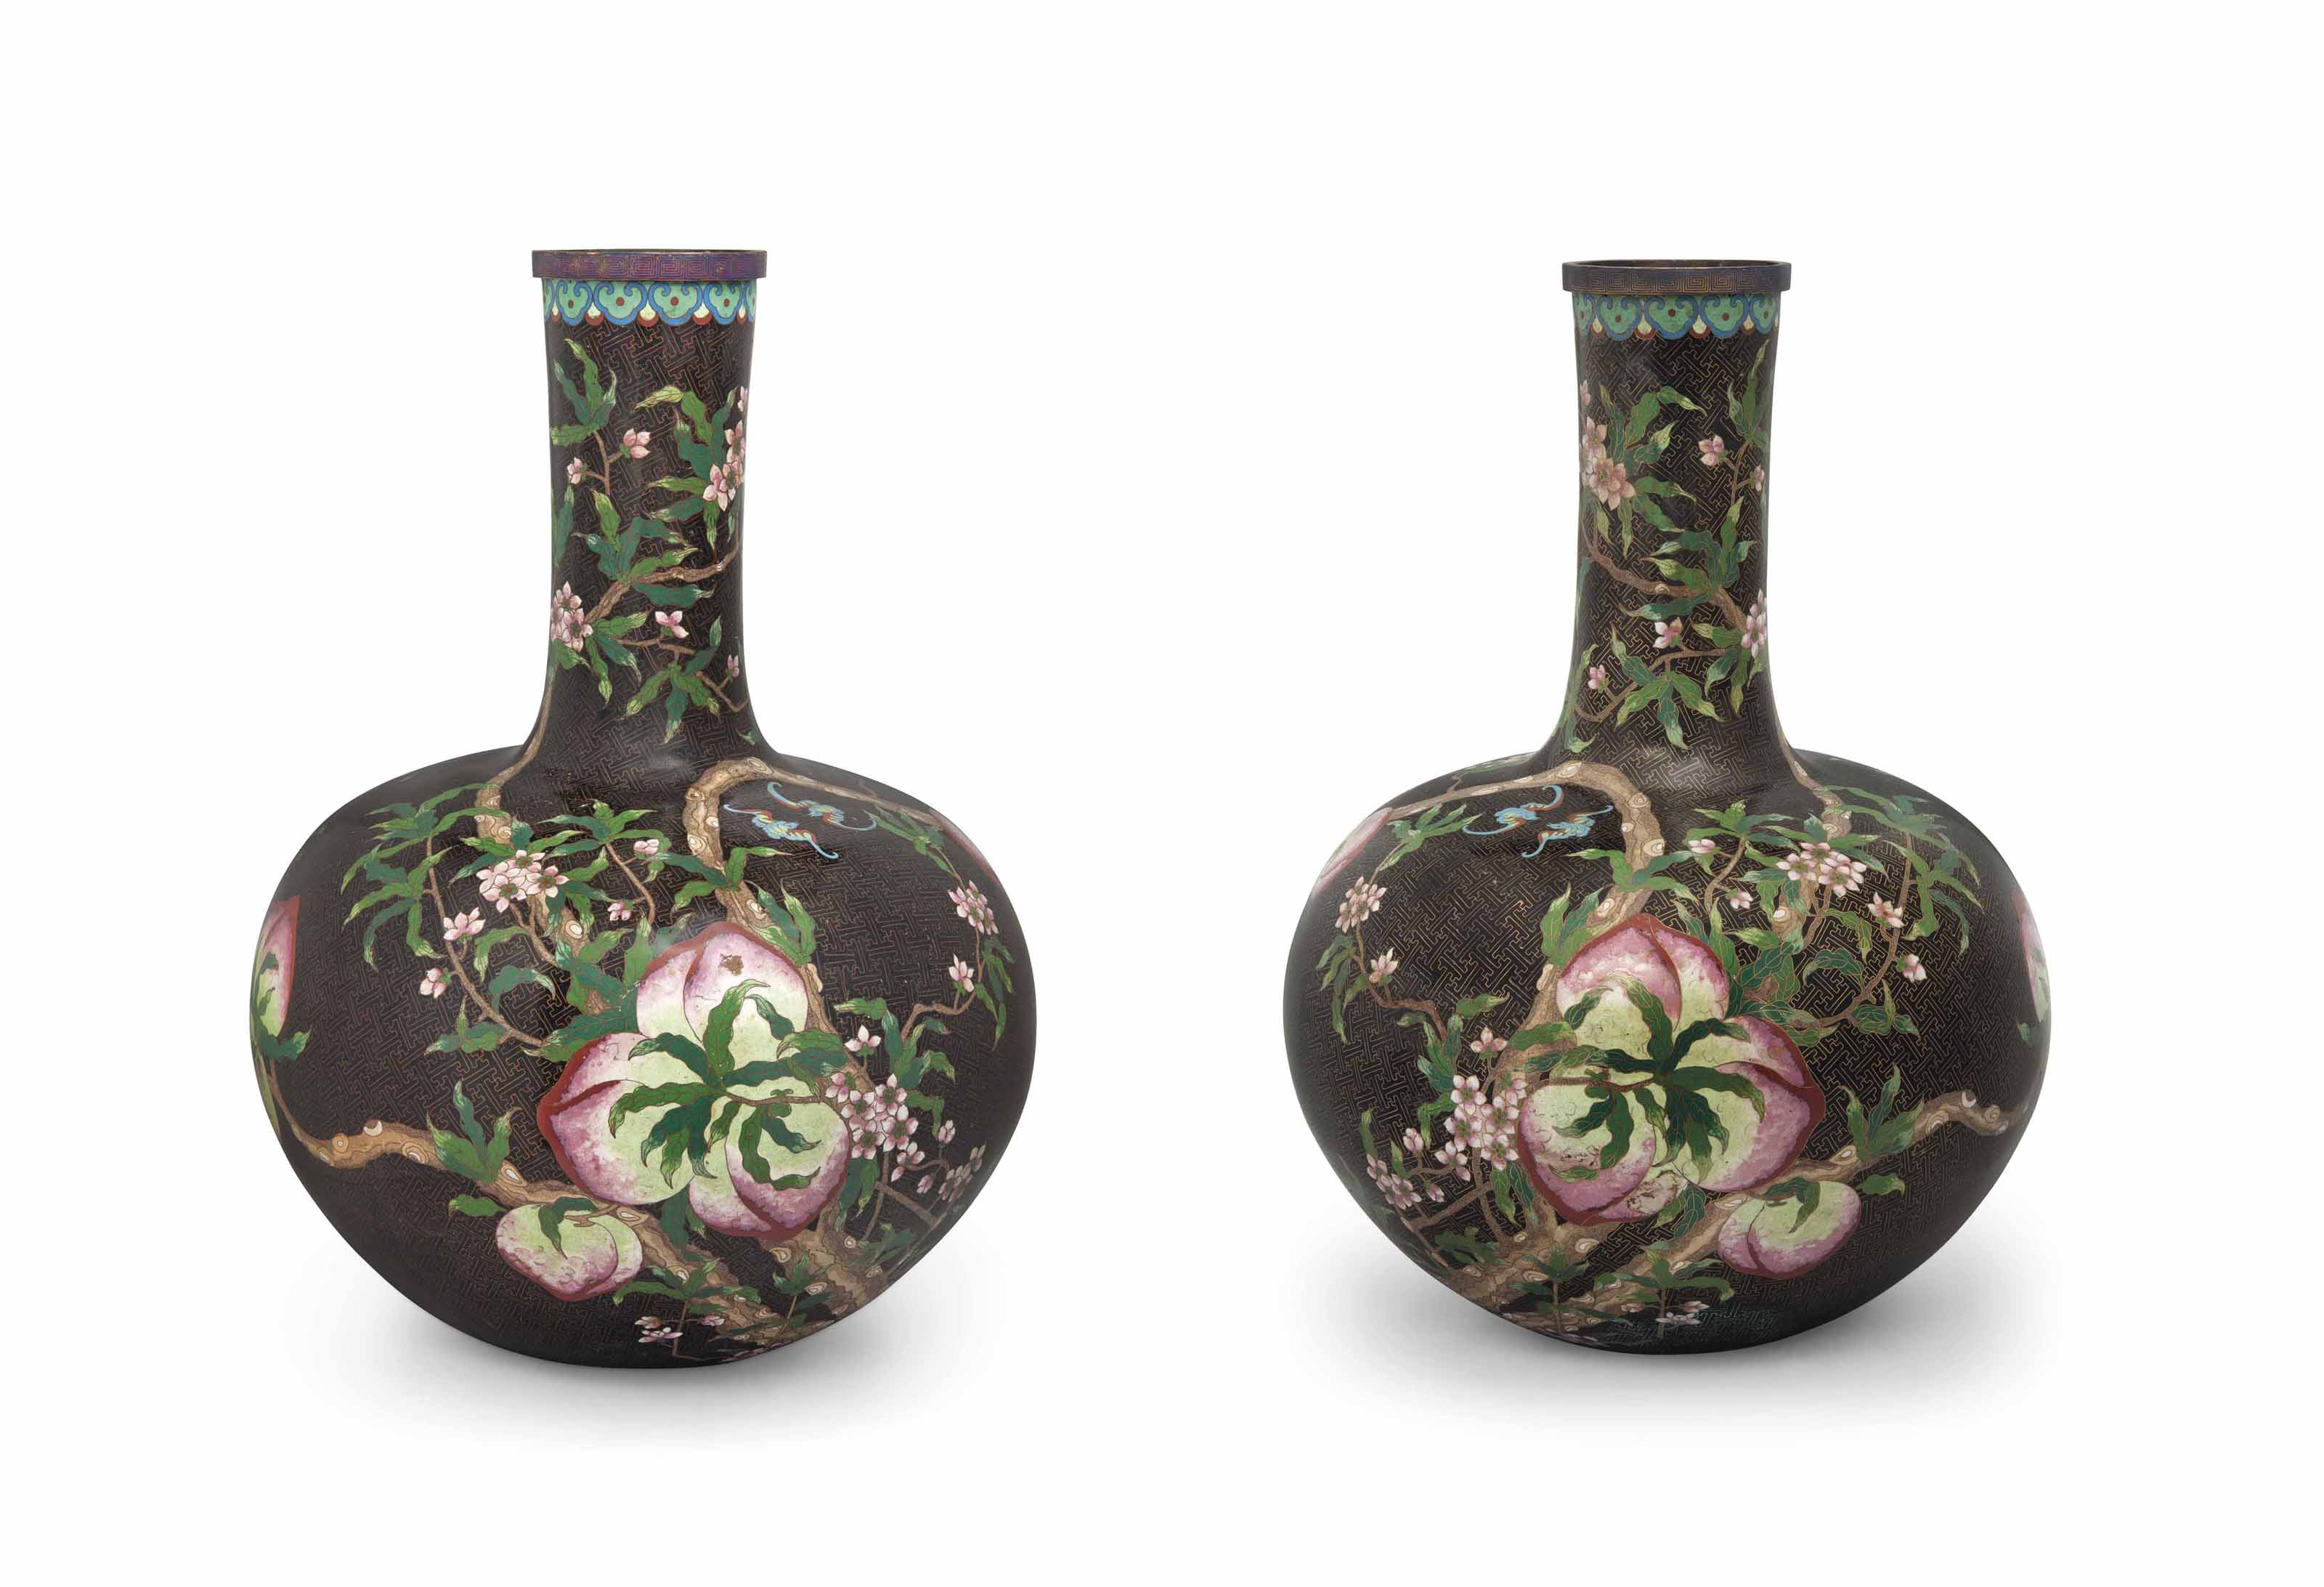 A VERY LARGE PAIR OF CHINESE CLOISONNÉ ENAMEL BOTTLE VASES